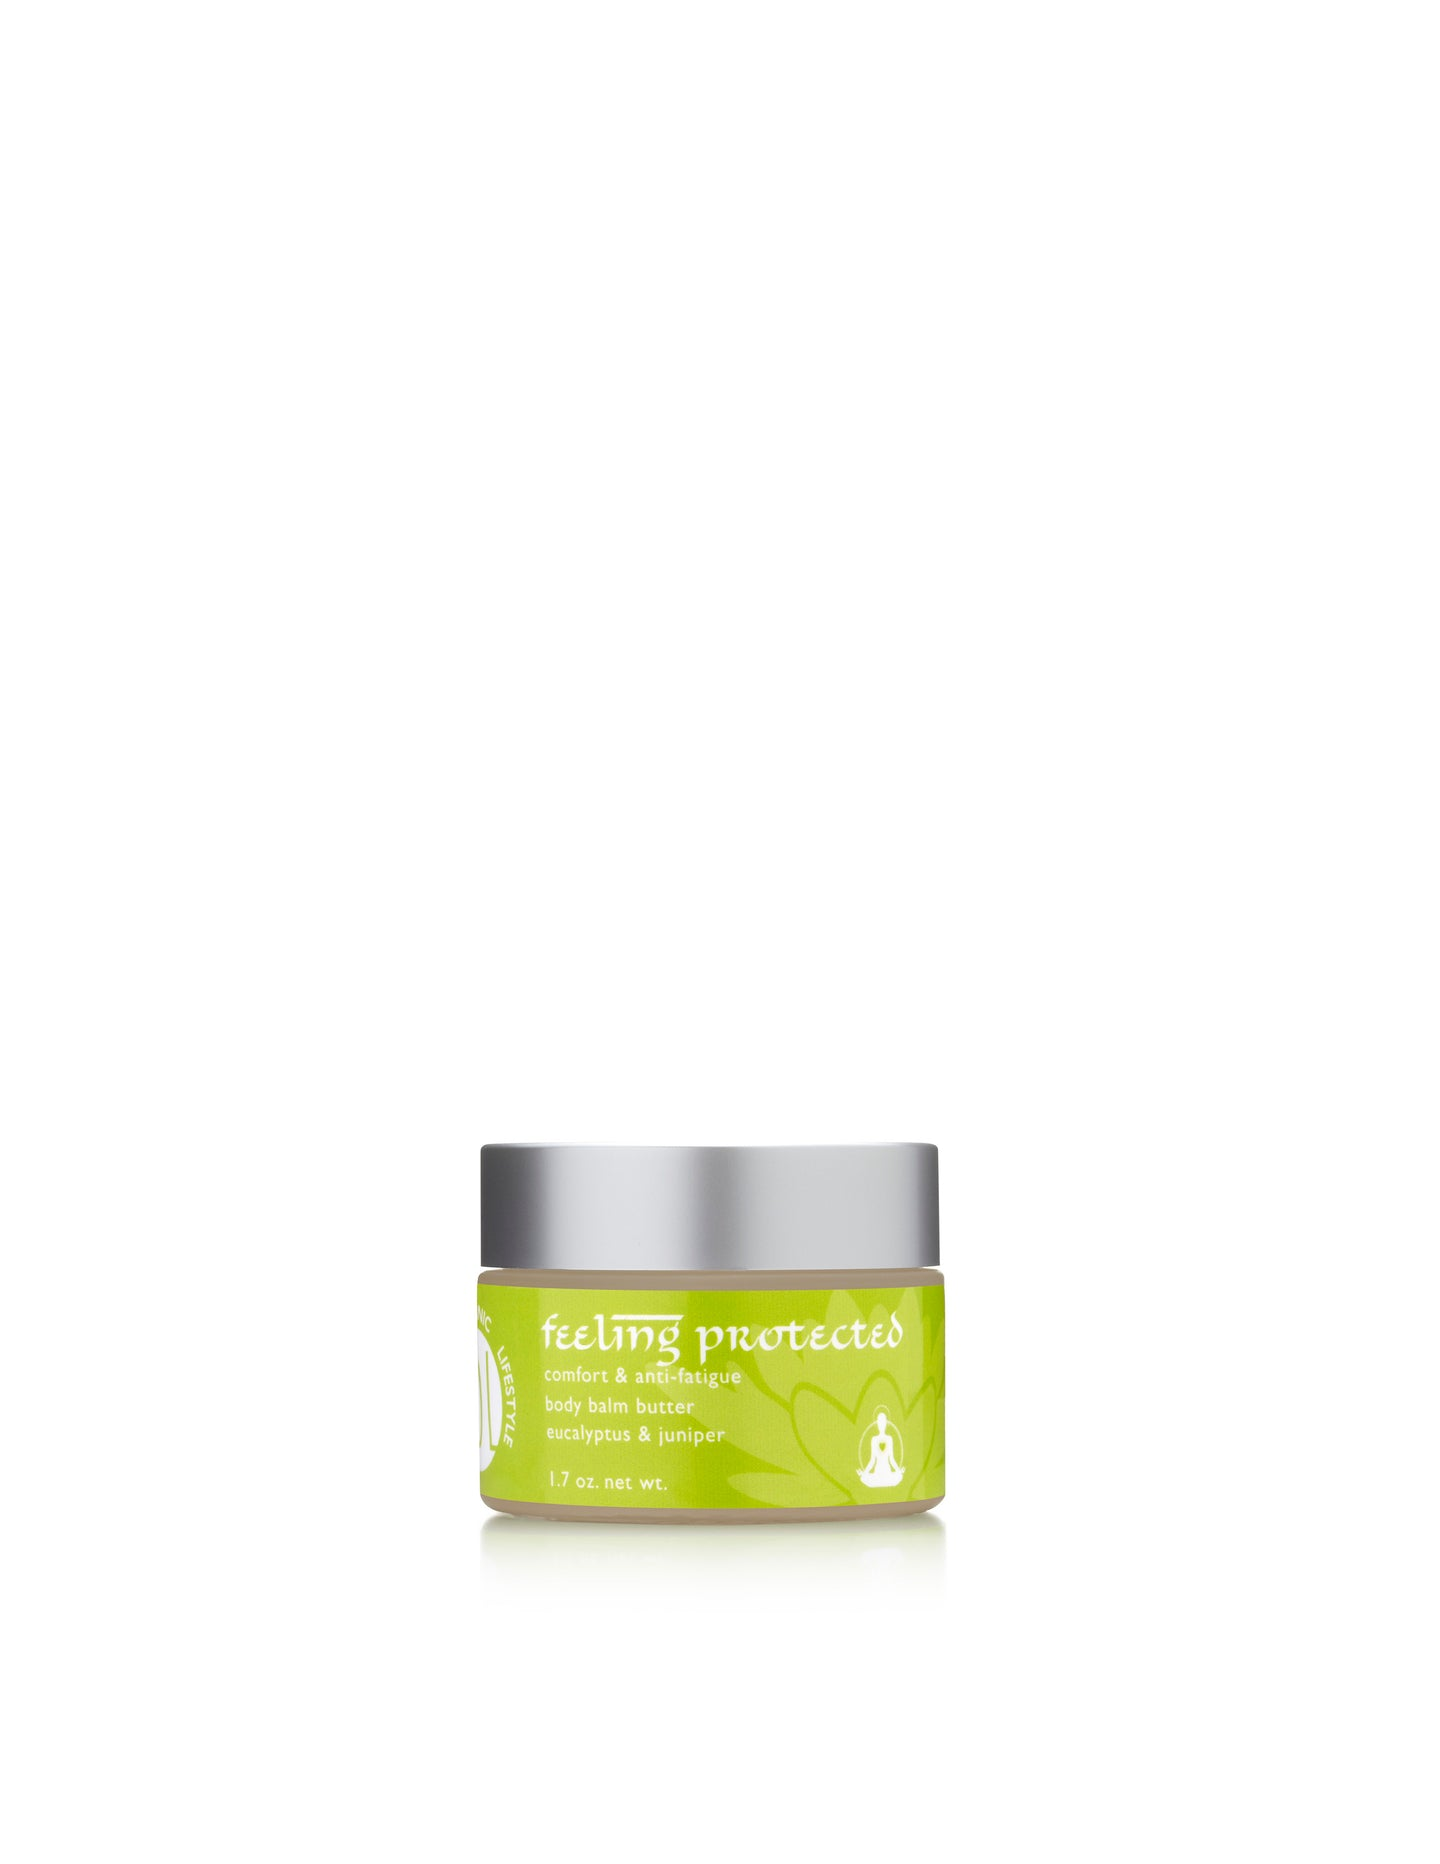 Feeling Protected Comfort & Anti-Fatigue Body Balm Butter